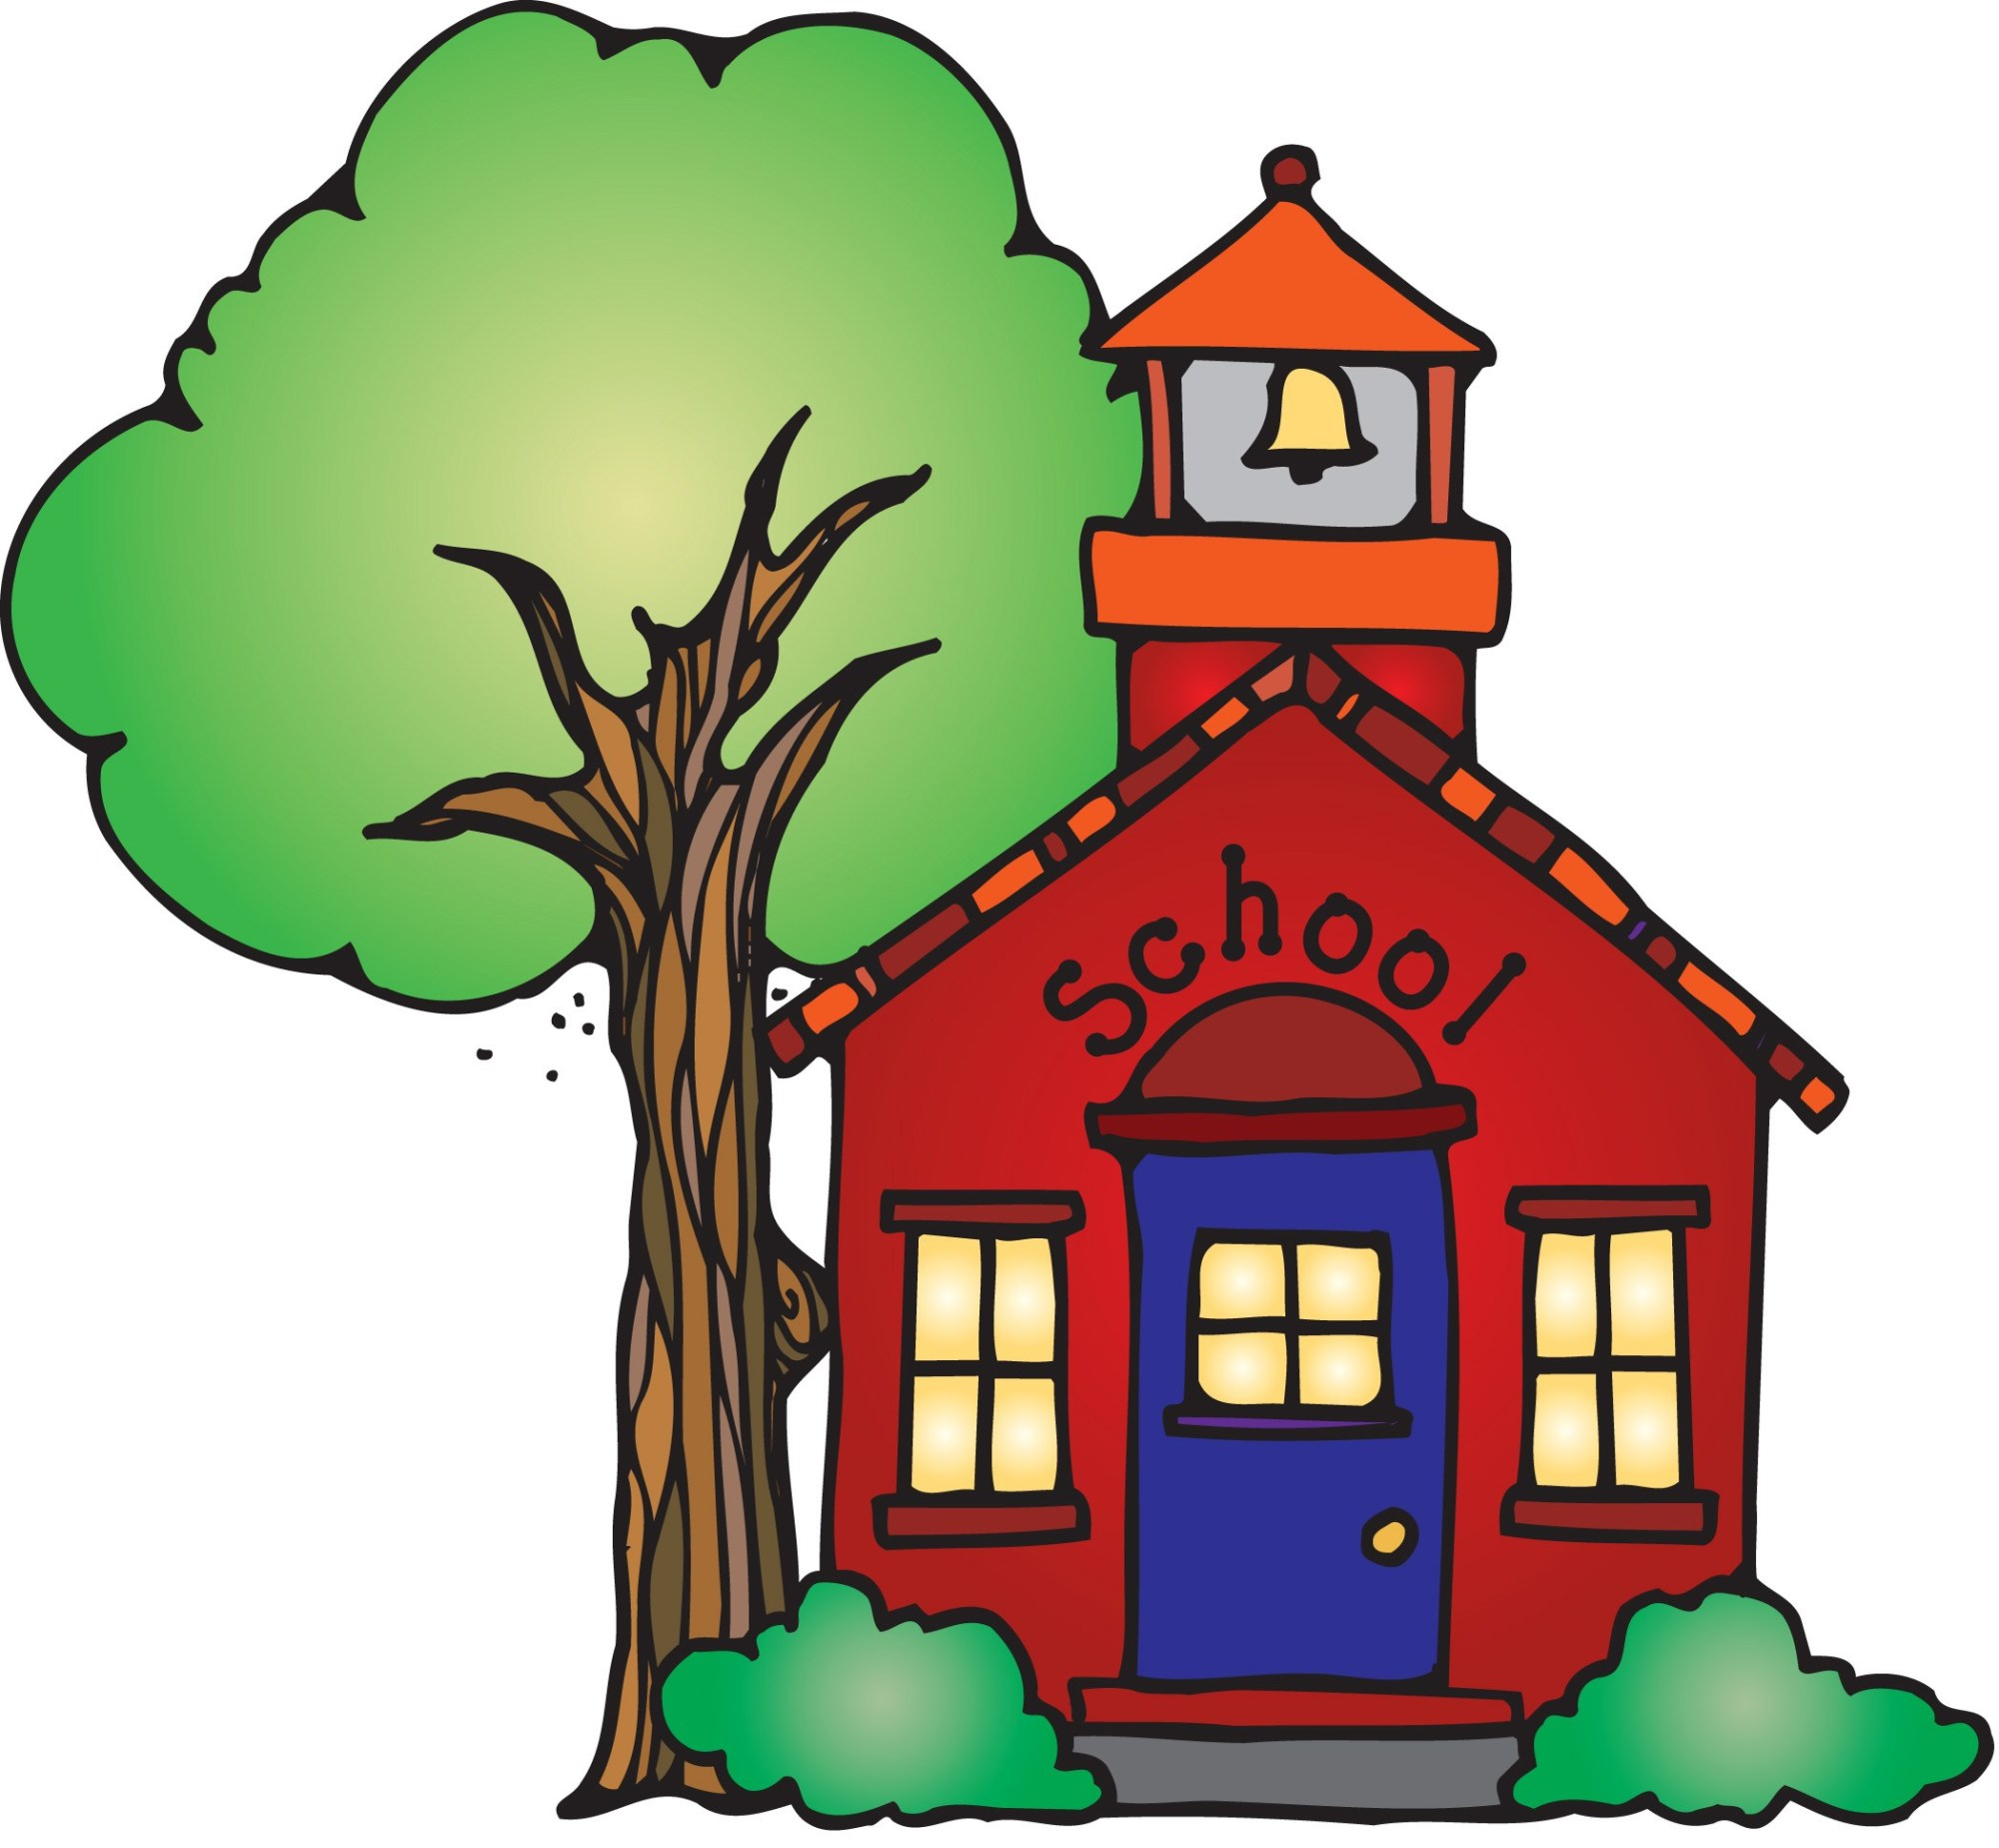 hight resolution of school clip art images for public to use schoolclipartcom